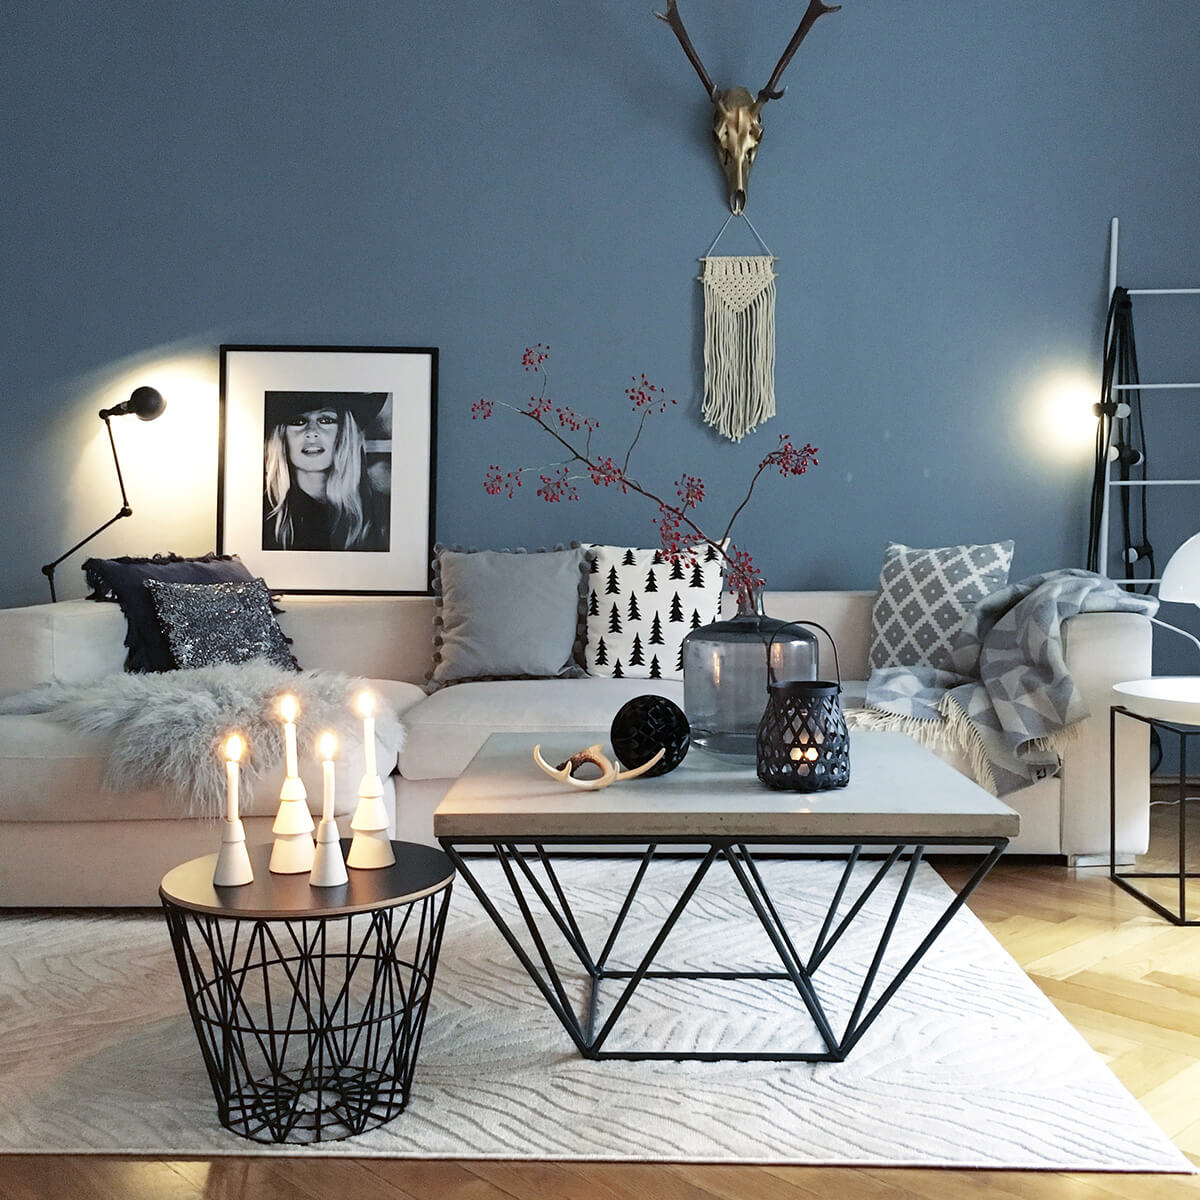 coffee table living room design interior decorating for small rooms 37 best ideas and designs 2019 12 modern minimalist flower candle display in shades of grey